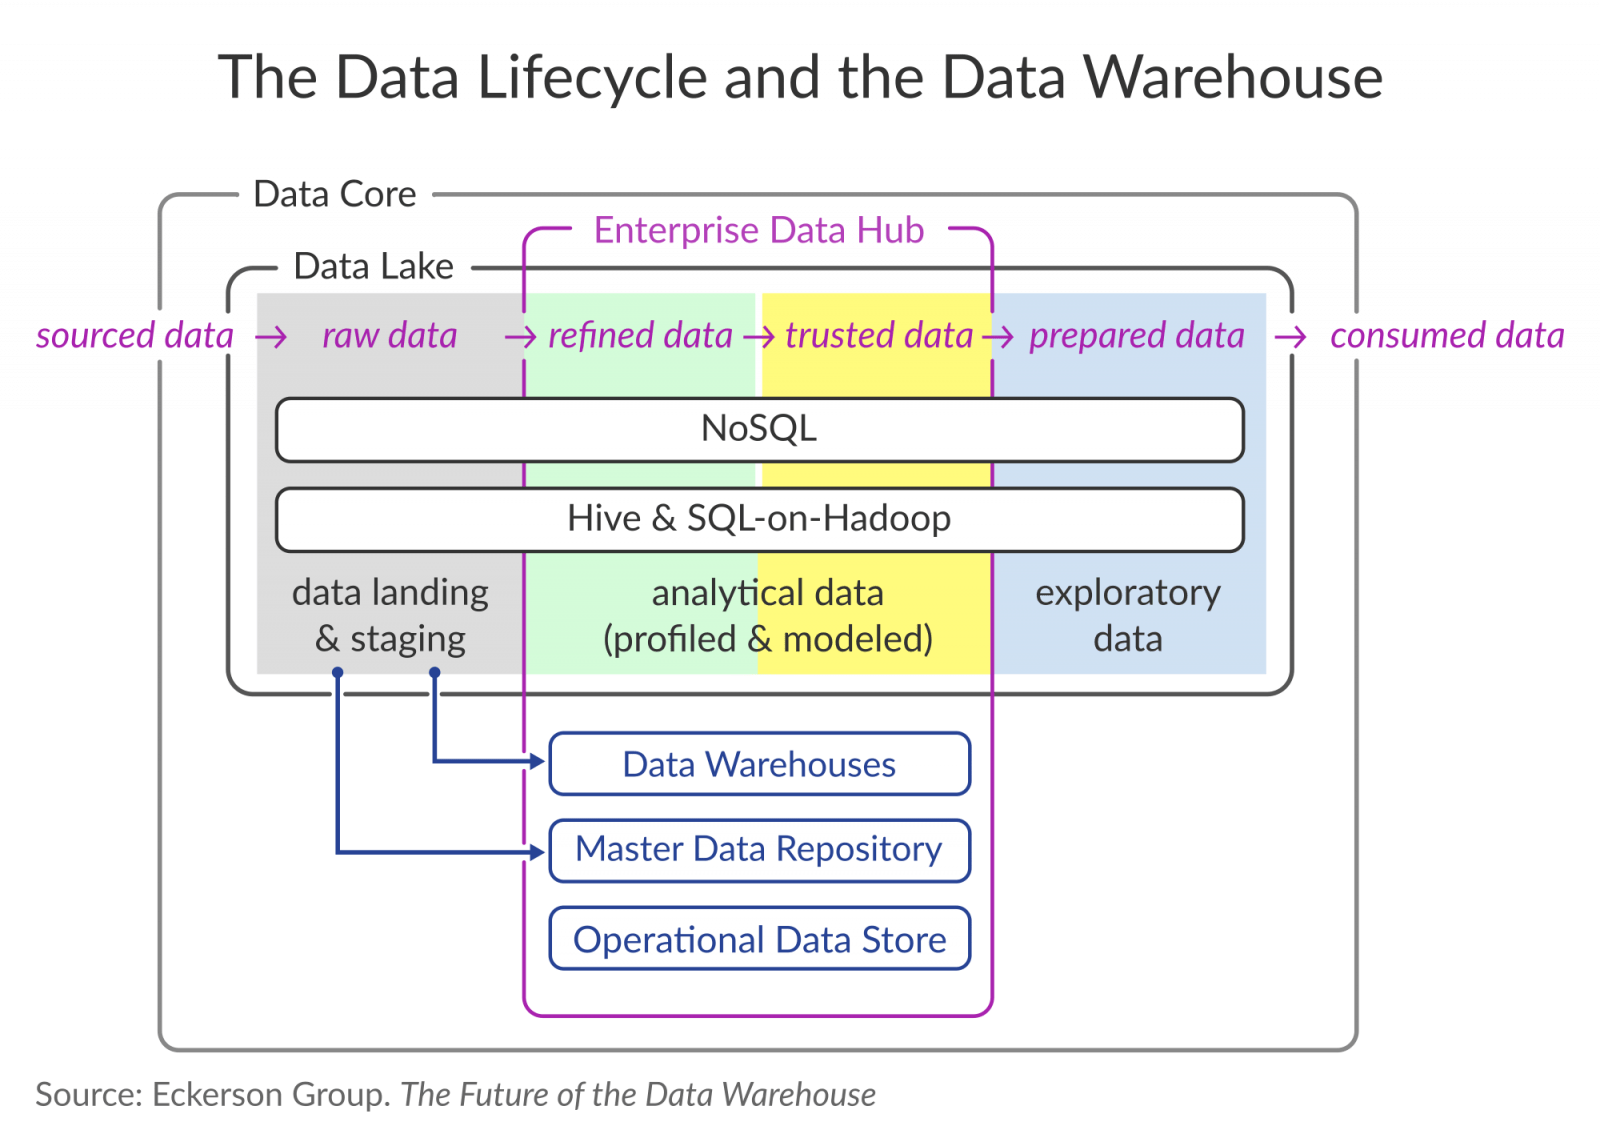 Data Warehouse Life Cycle Diagram - Schematics Online on